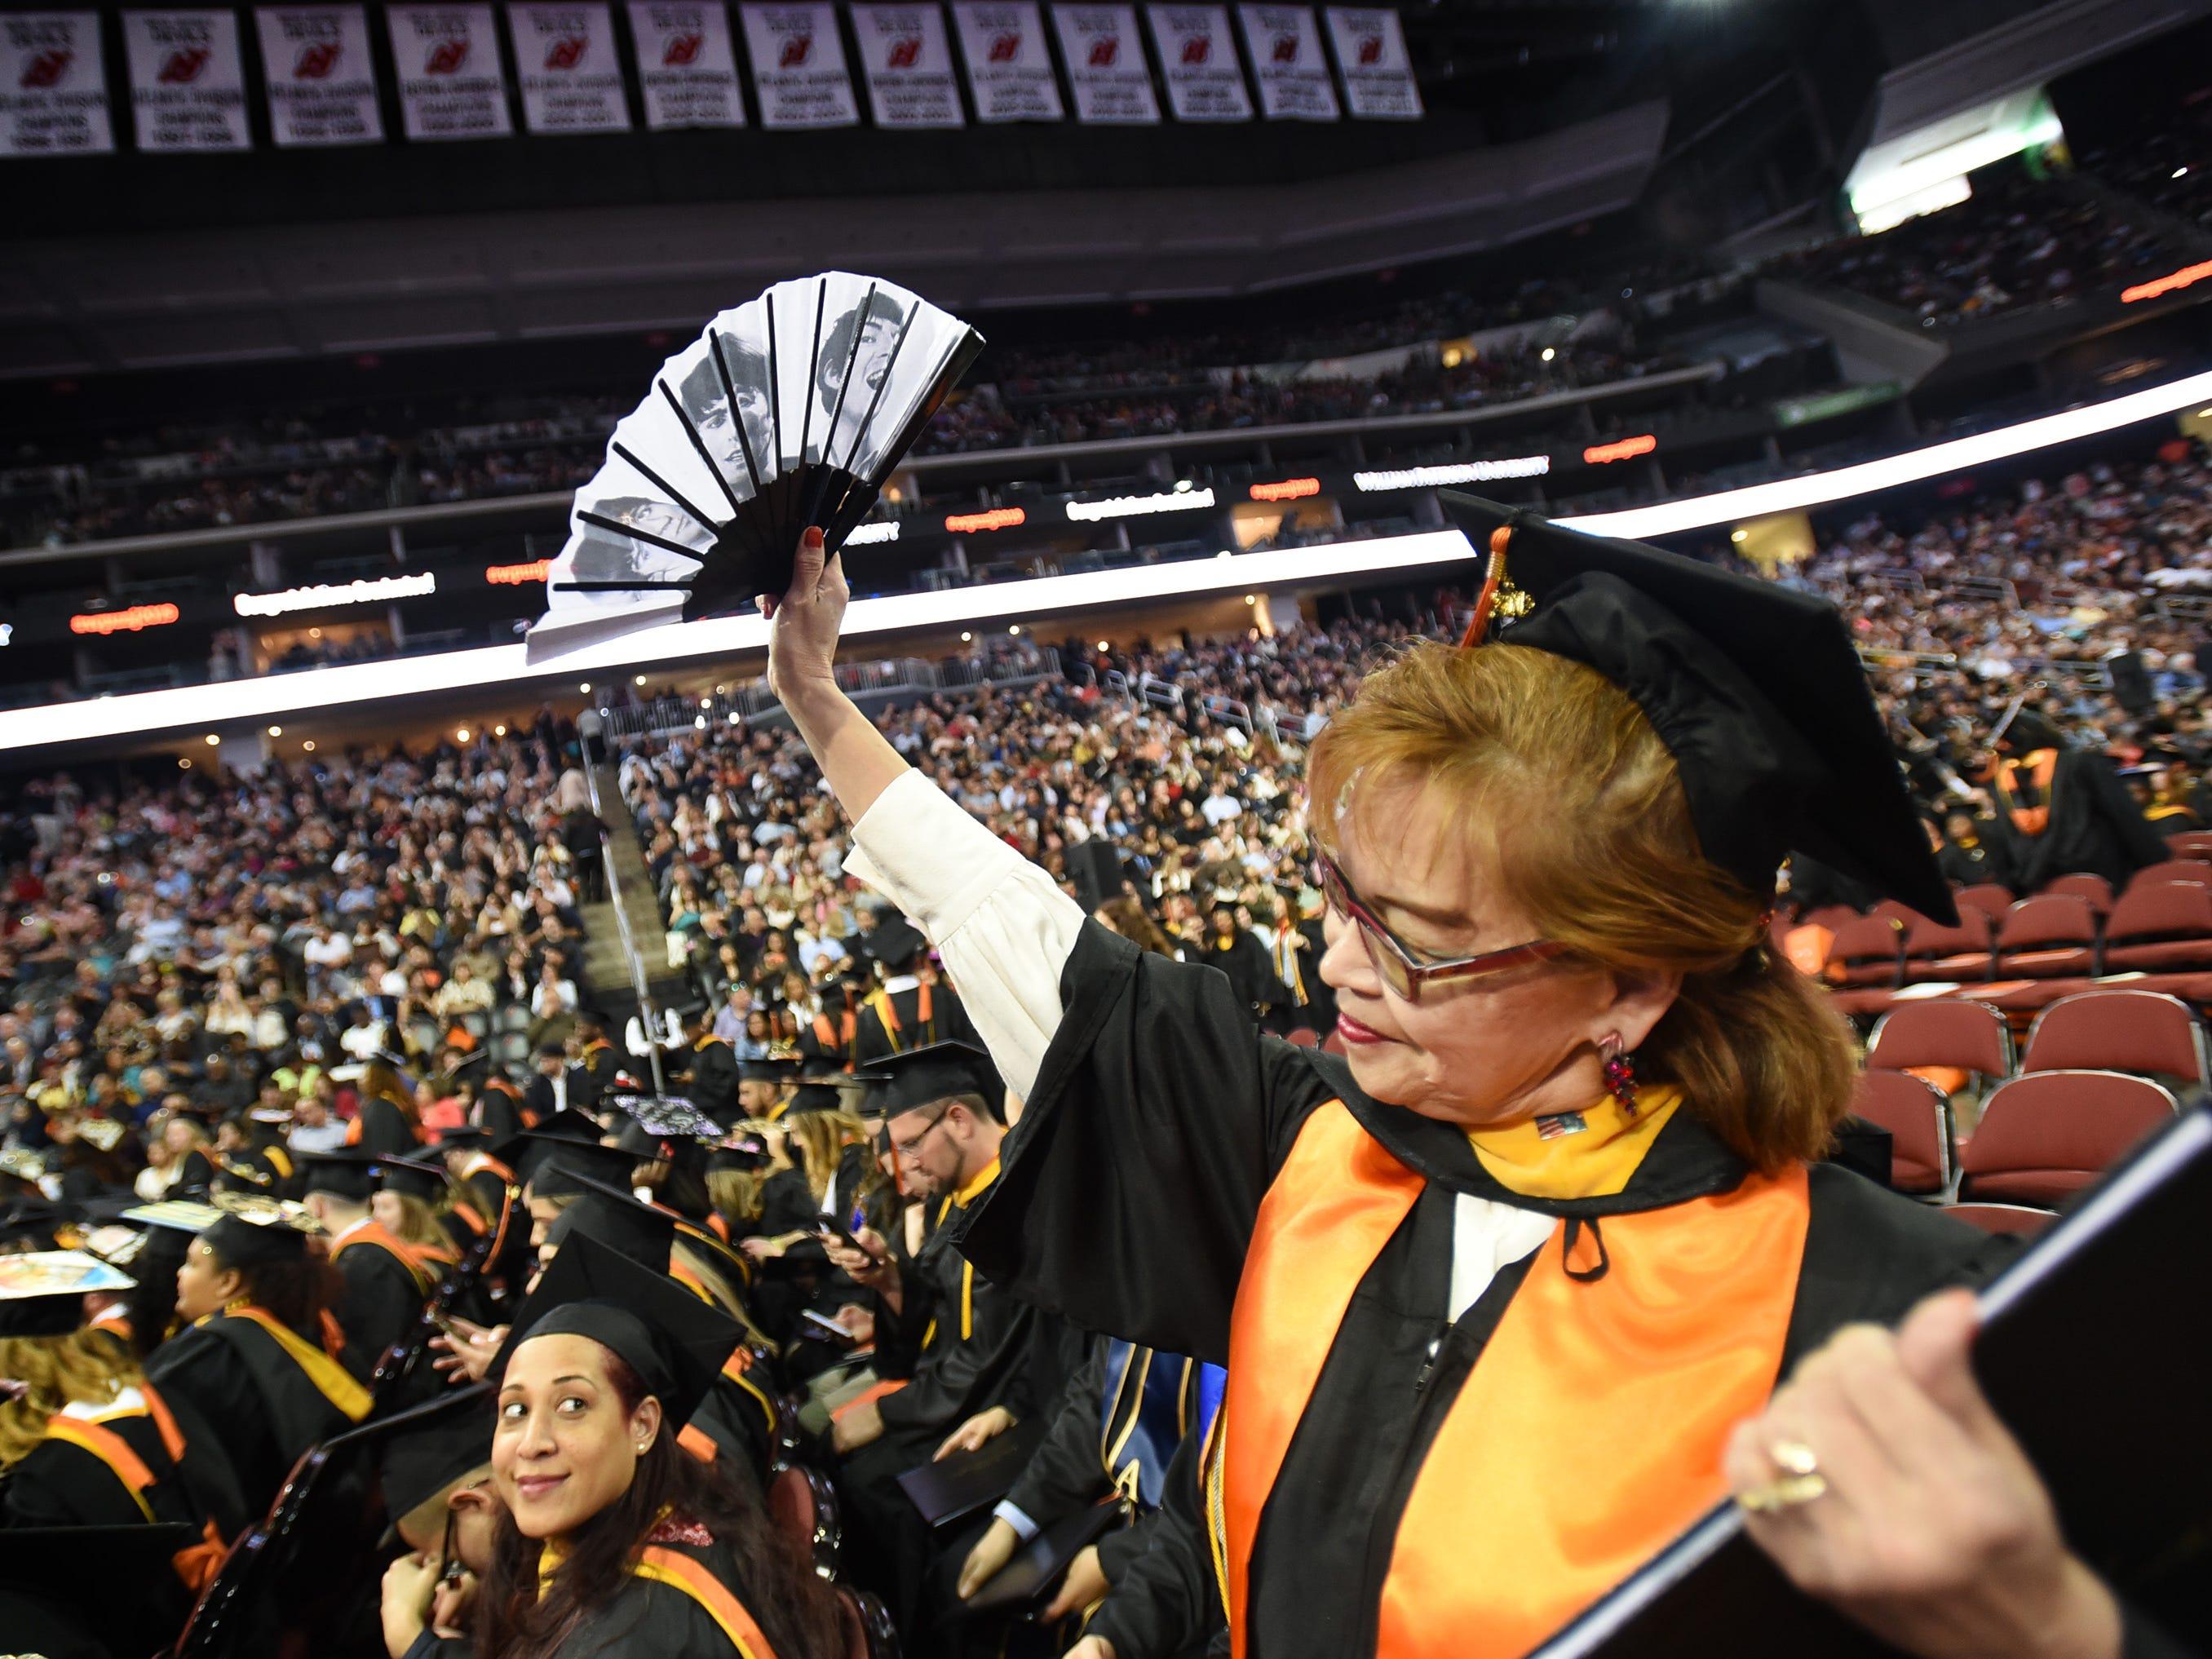 Monica Rieg of Clifton, Major in Business Accounting, waves with a fan that was sent by her son from England, during the William Paterson University 2019 Commencement at the Prudential Center in Newark on 05/15/19.